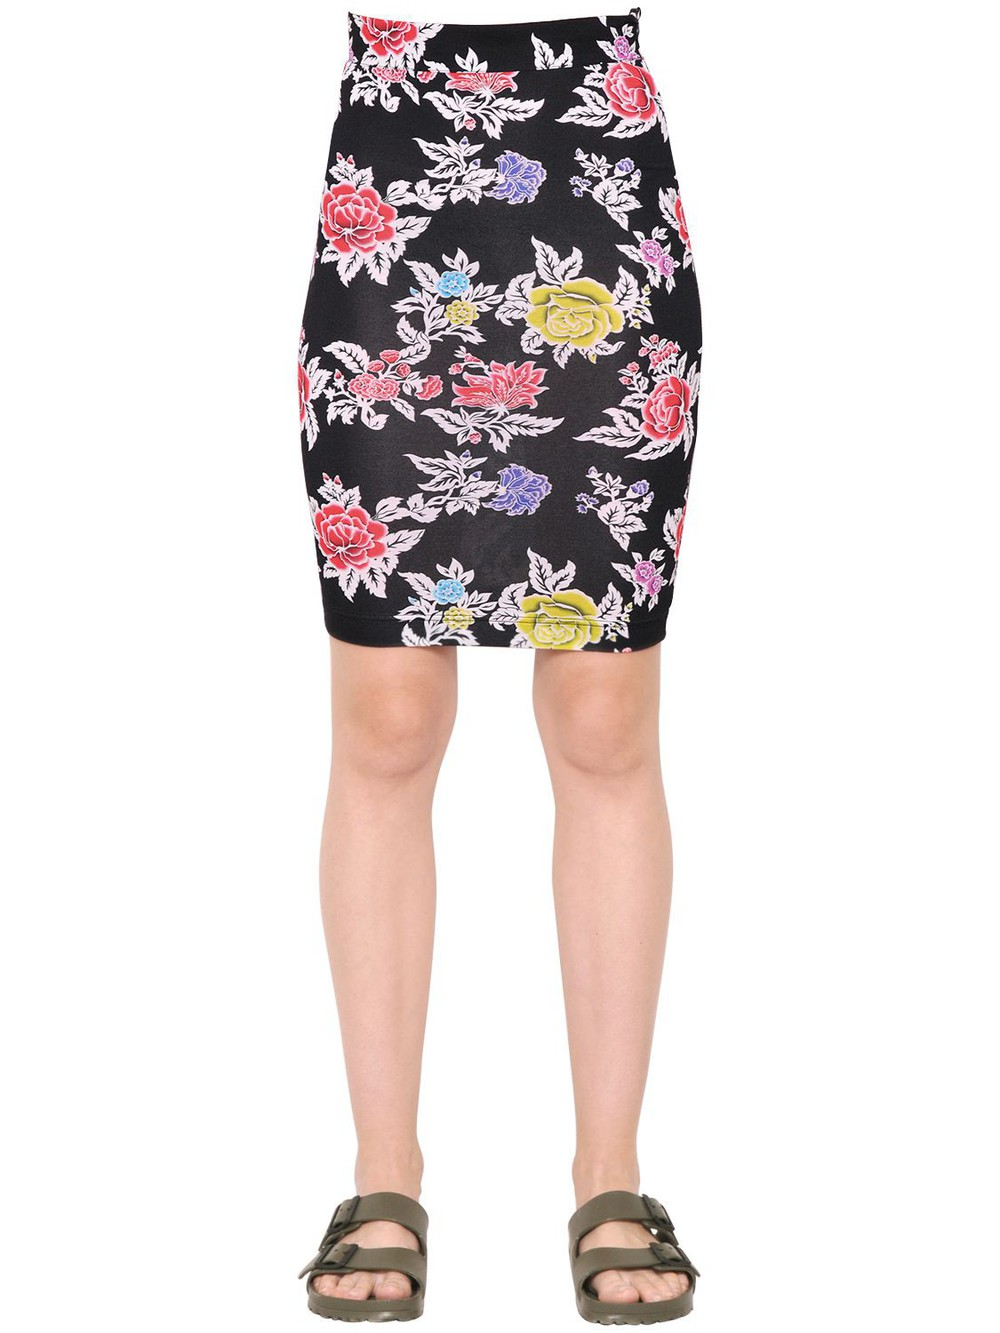 HOUSE OF HOLLAND Rose Printed Viscose Jersey Pencil Skirt in black / multi